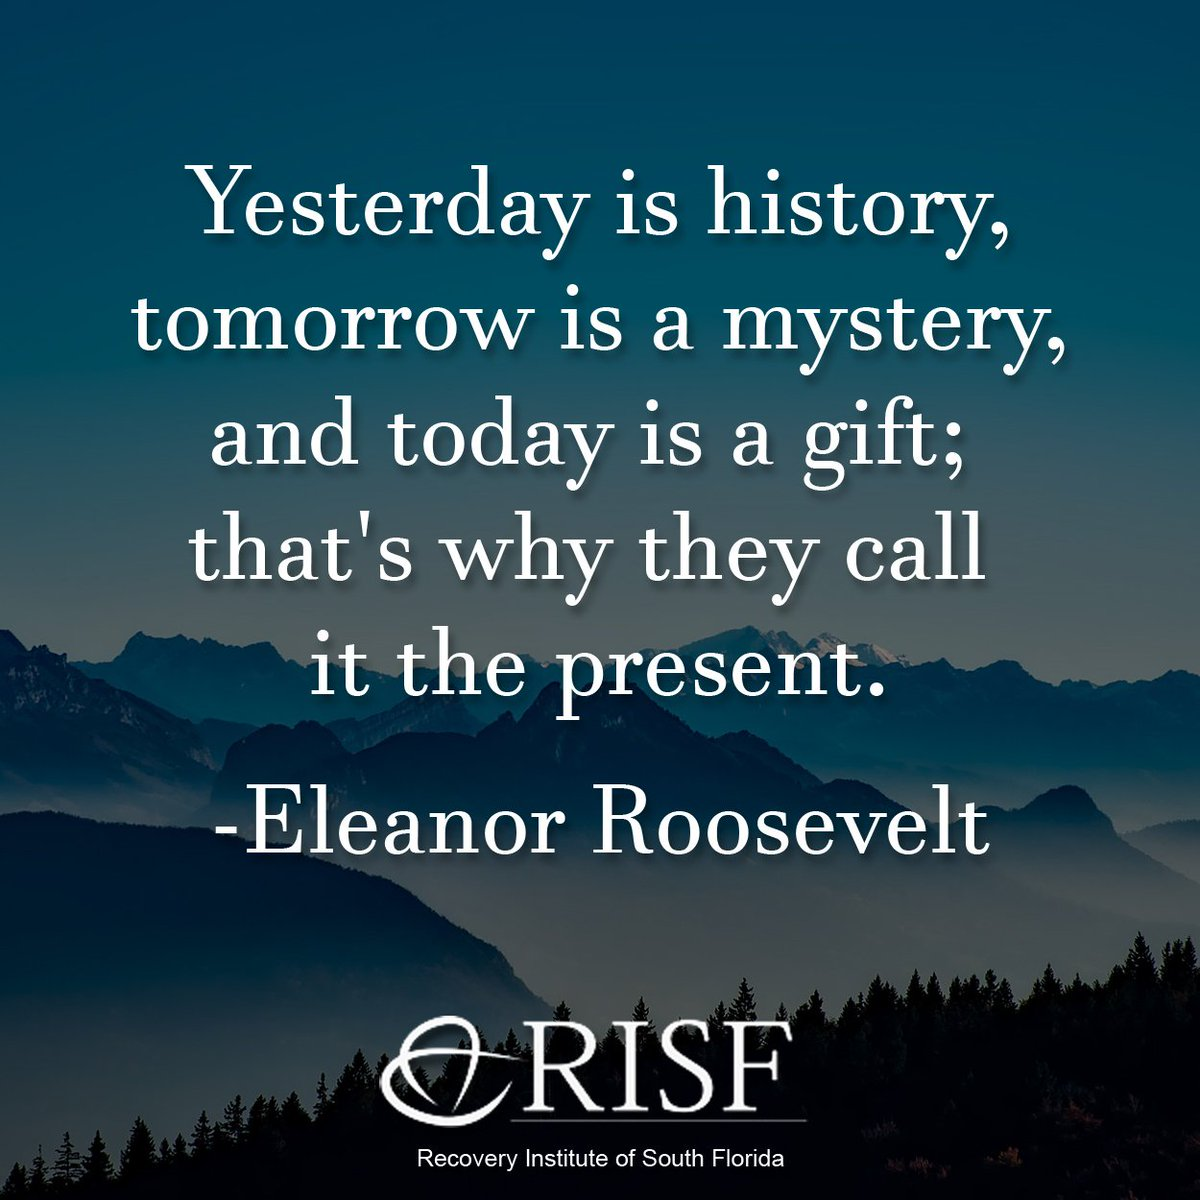 Risf On Twitter Yesterday Is History Tomorrow Is A Mystery And